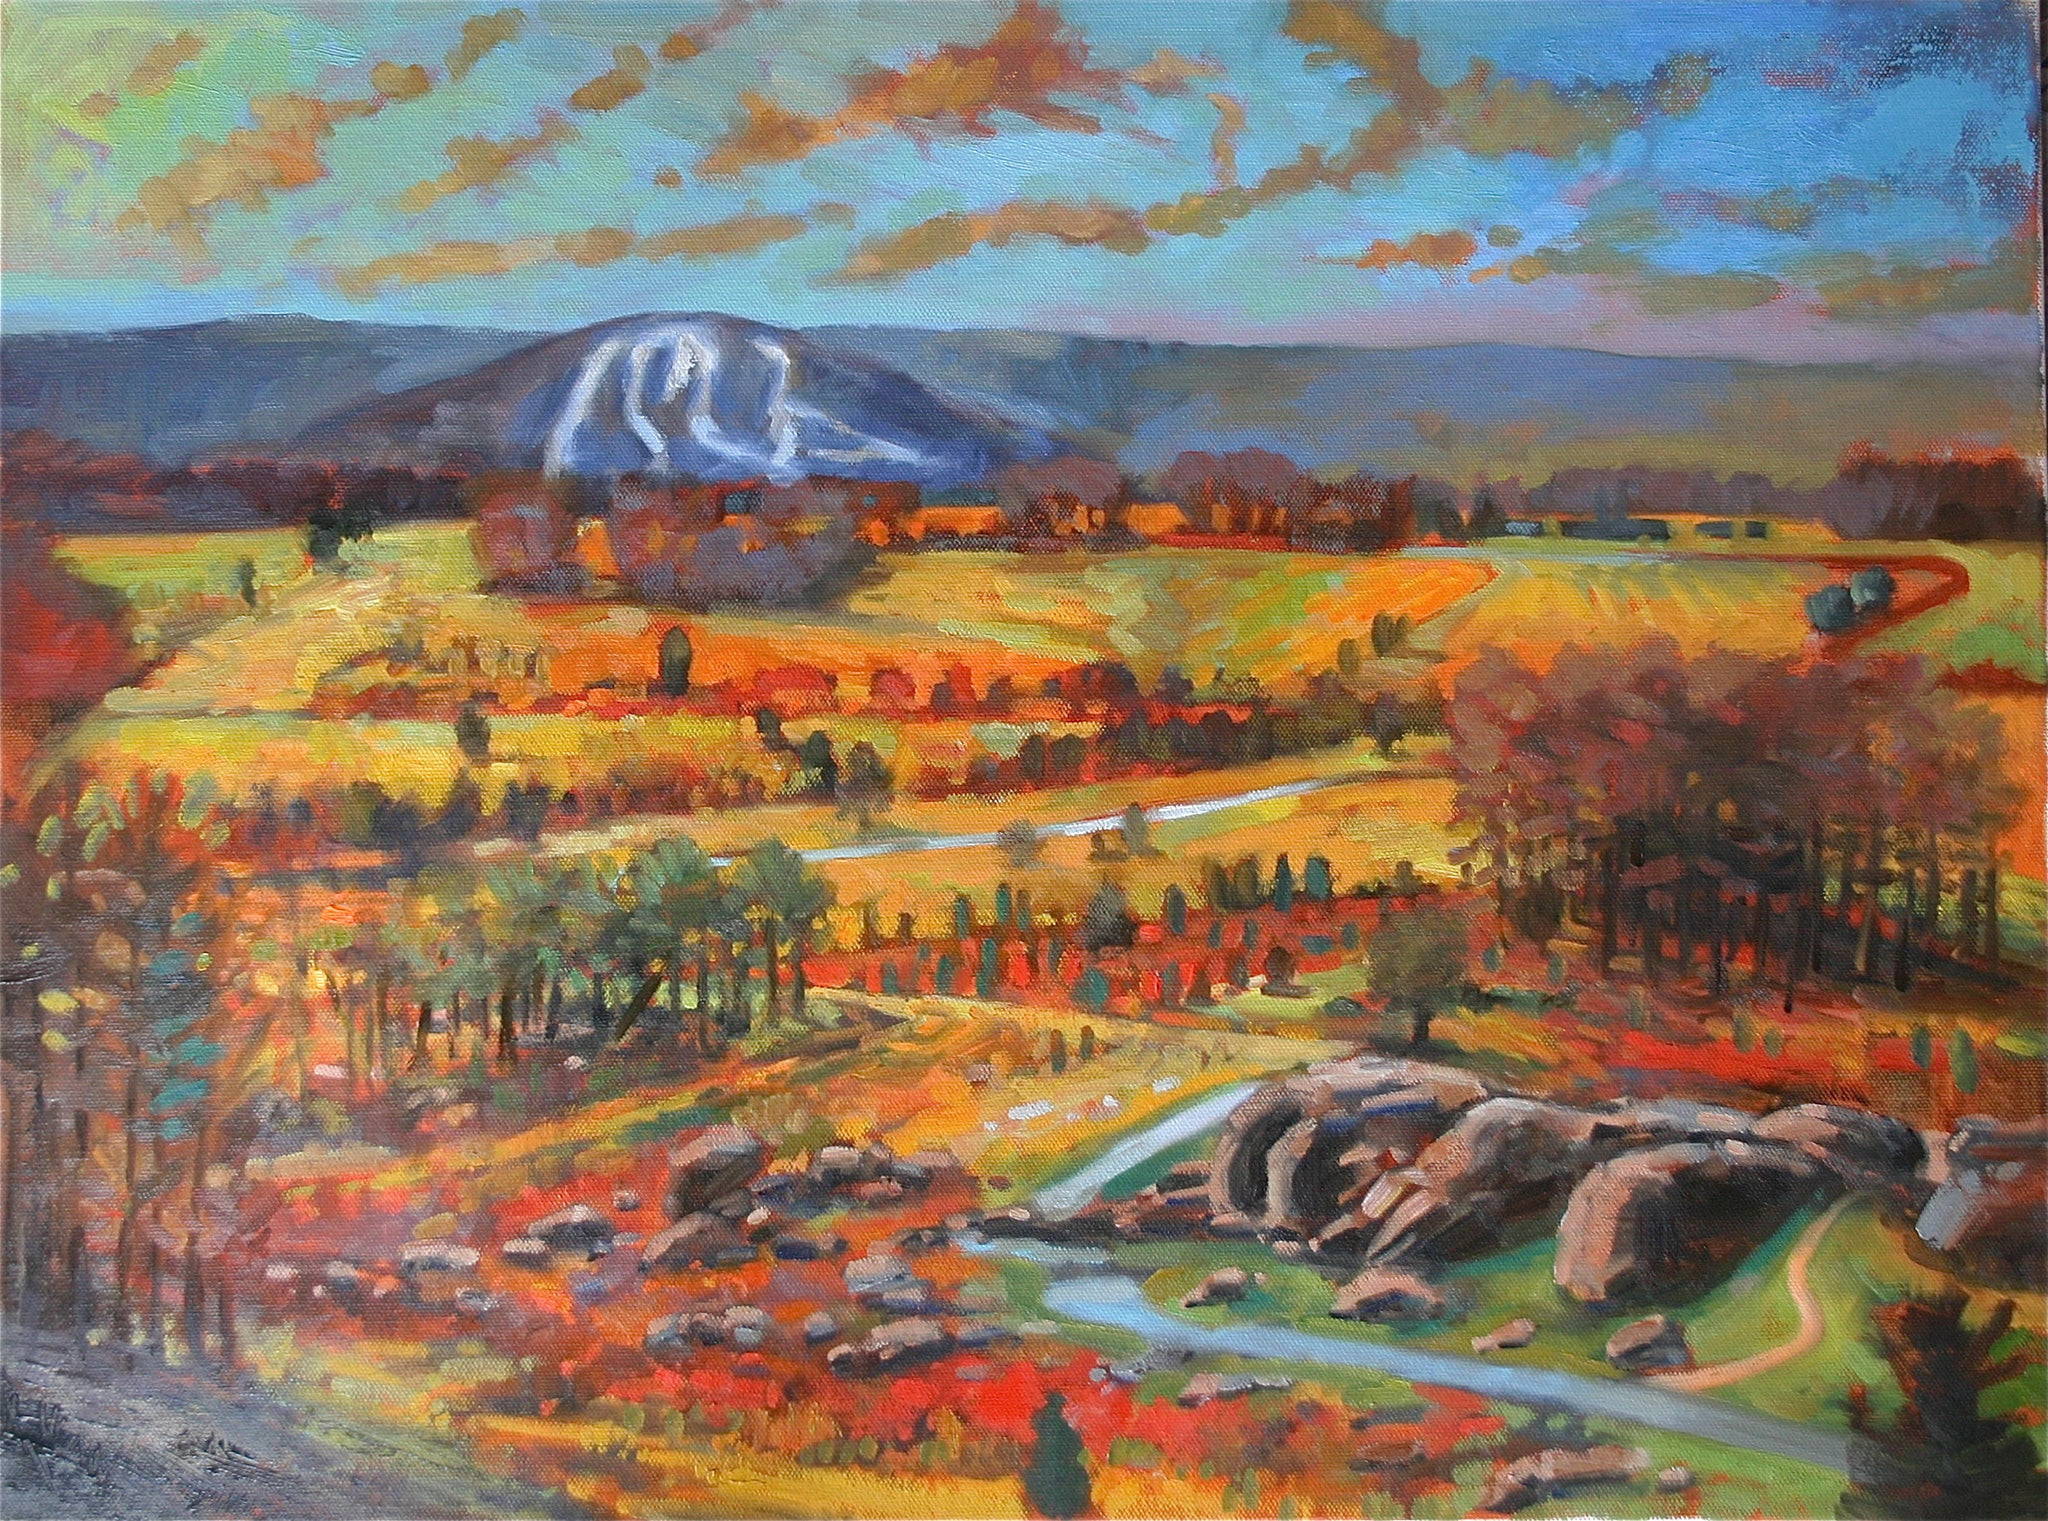 From Little Round Top to Ski Liberty by Jonathan Frazier